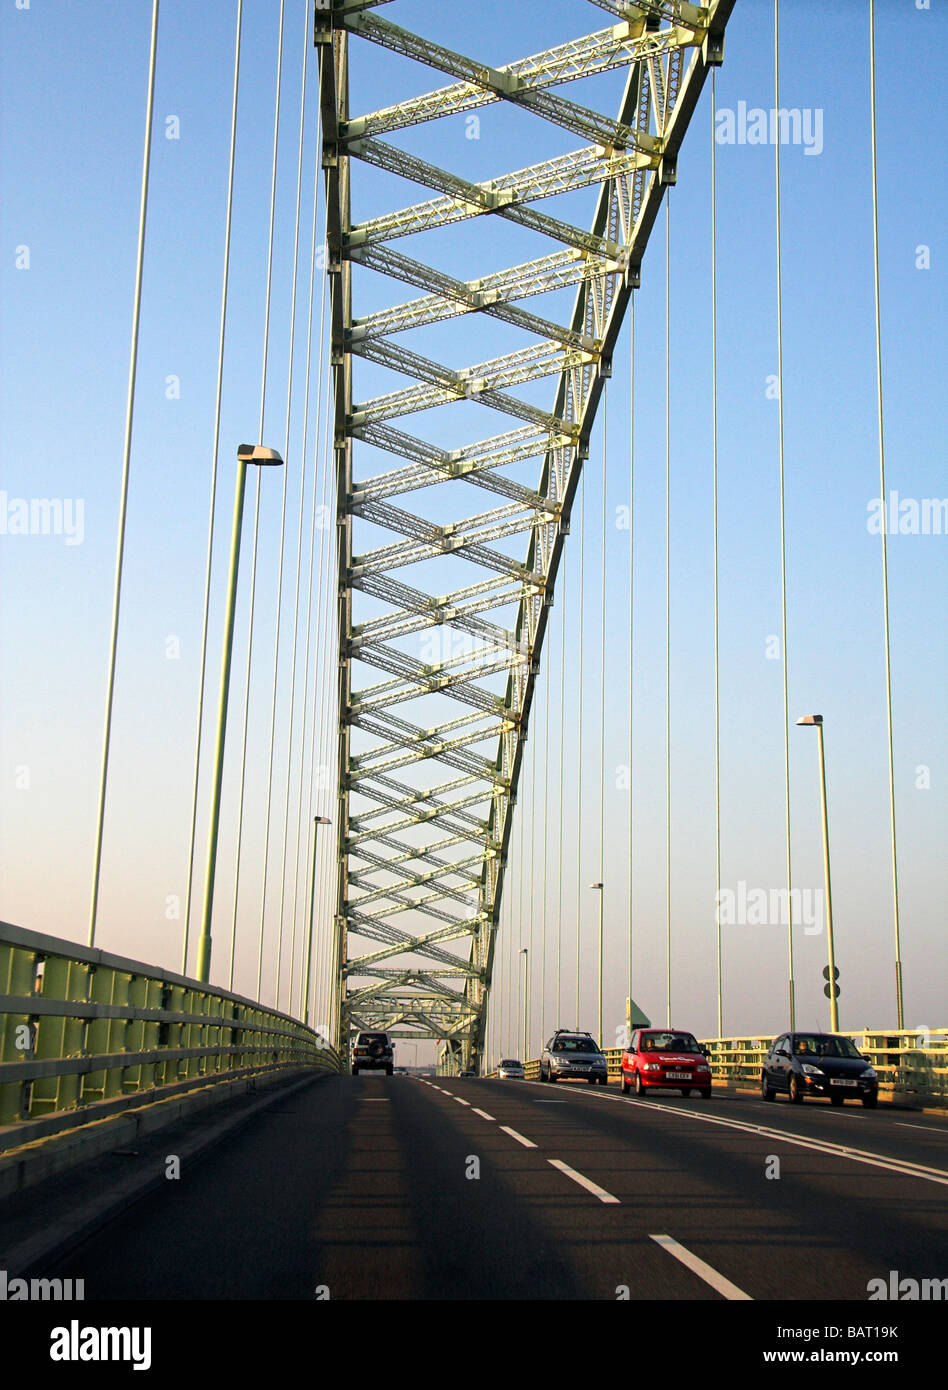 Motorists on  the Silver Jubilee Bridge over the River Mersey and Manchester Ship Canal at Runcorn Gap, Cheshire, - Stock Image